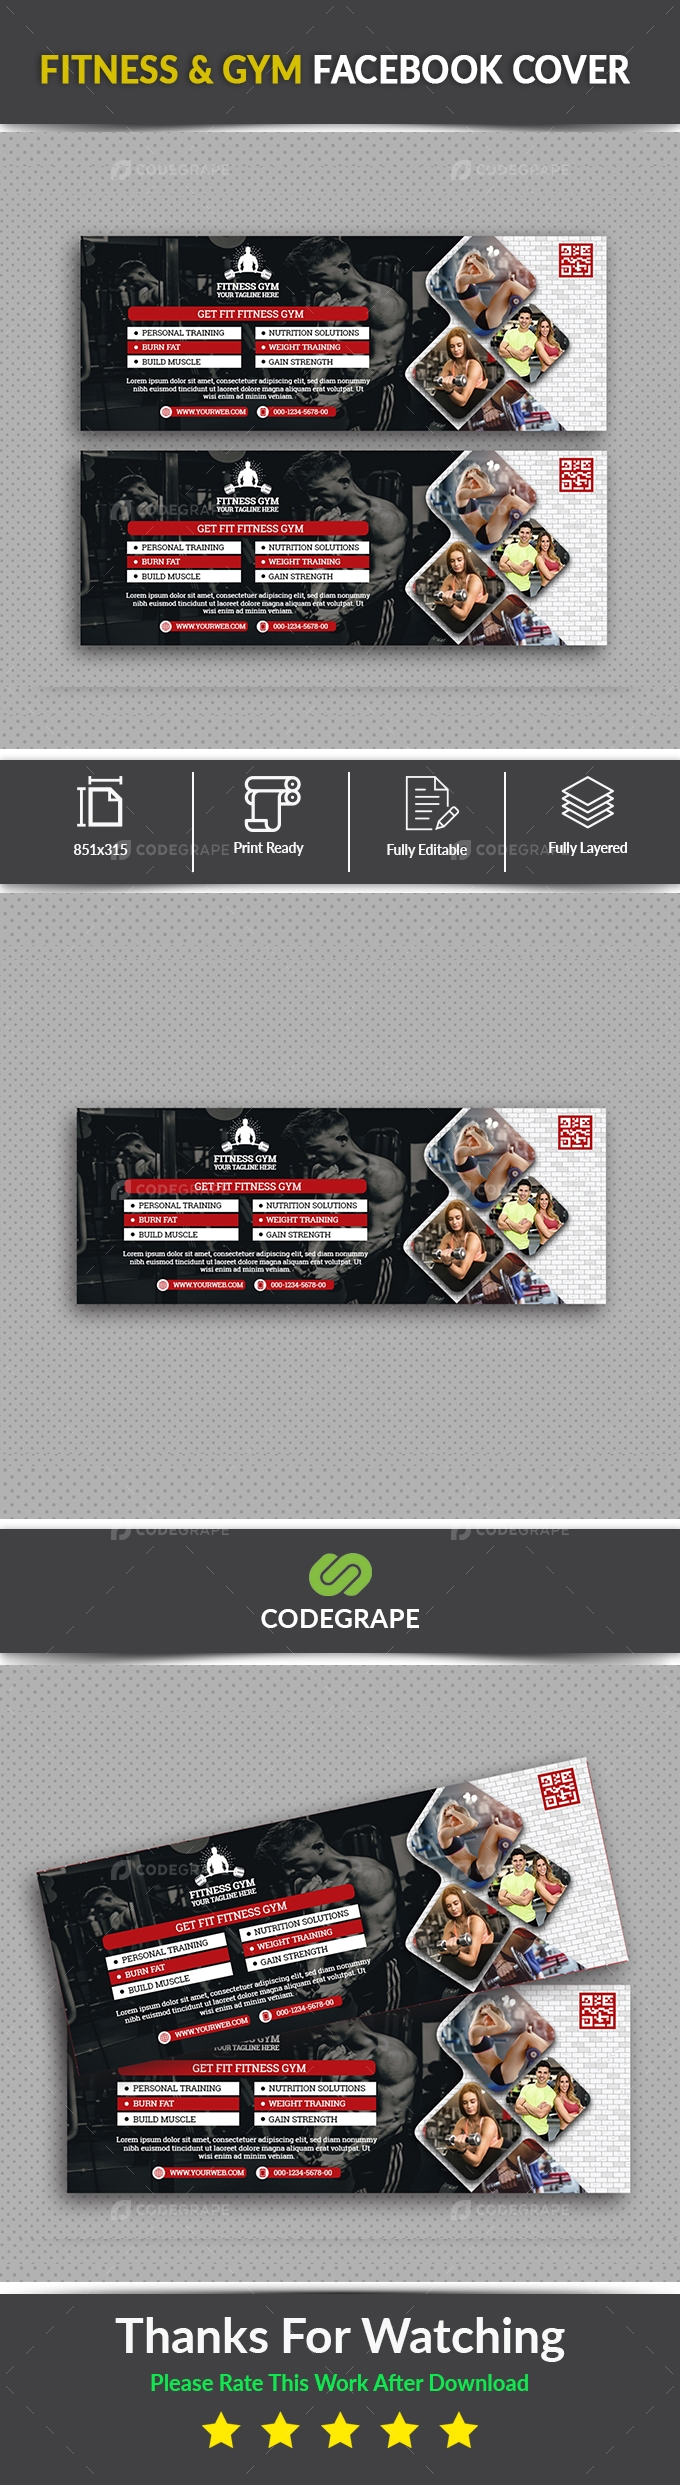 Fitness & GYM Facebook Cover